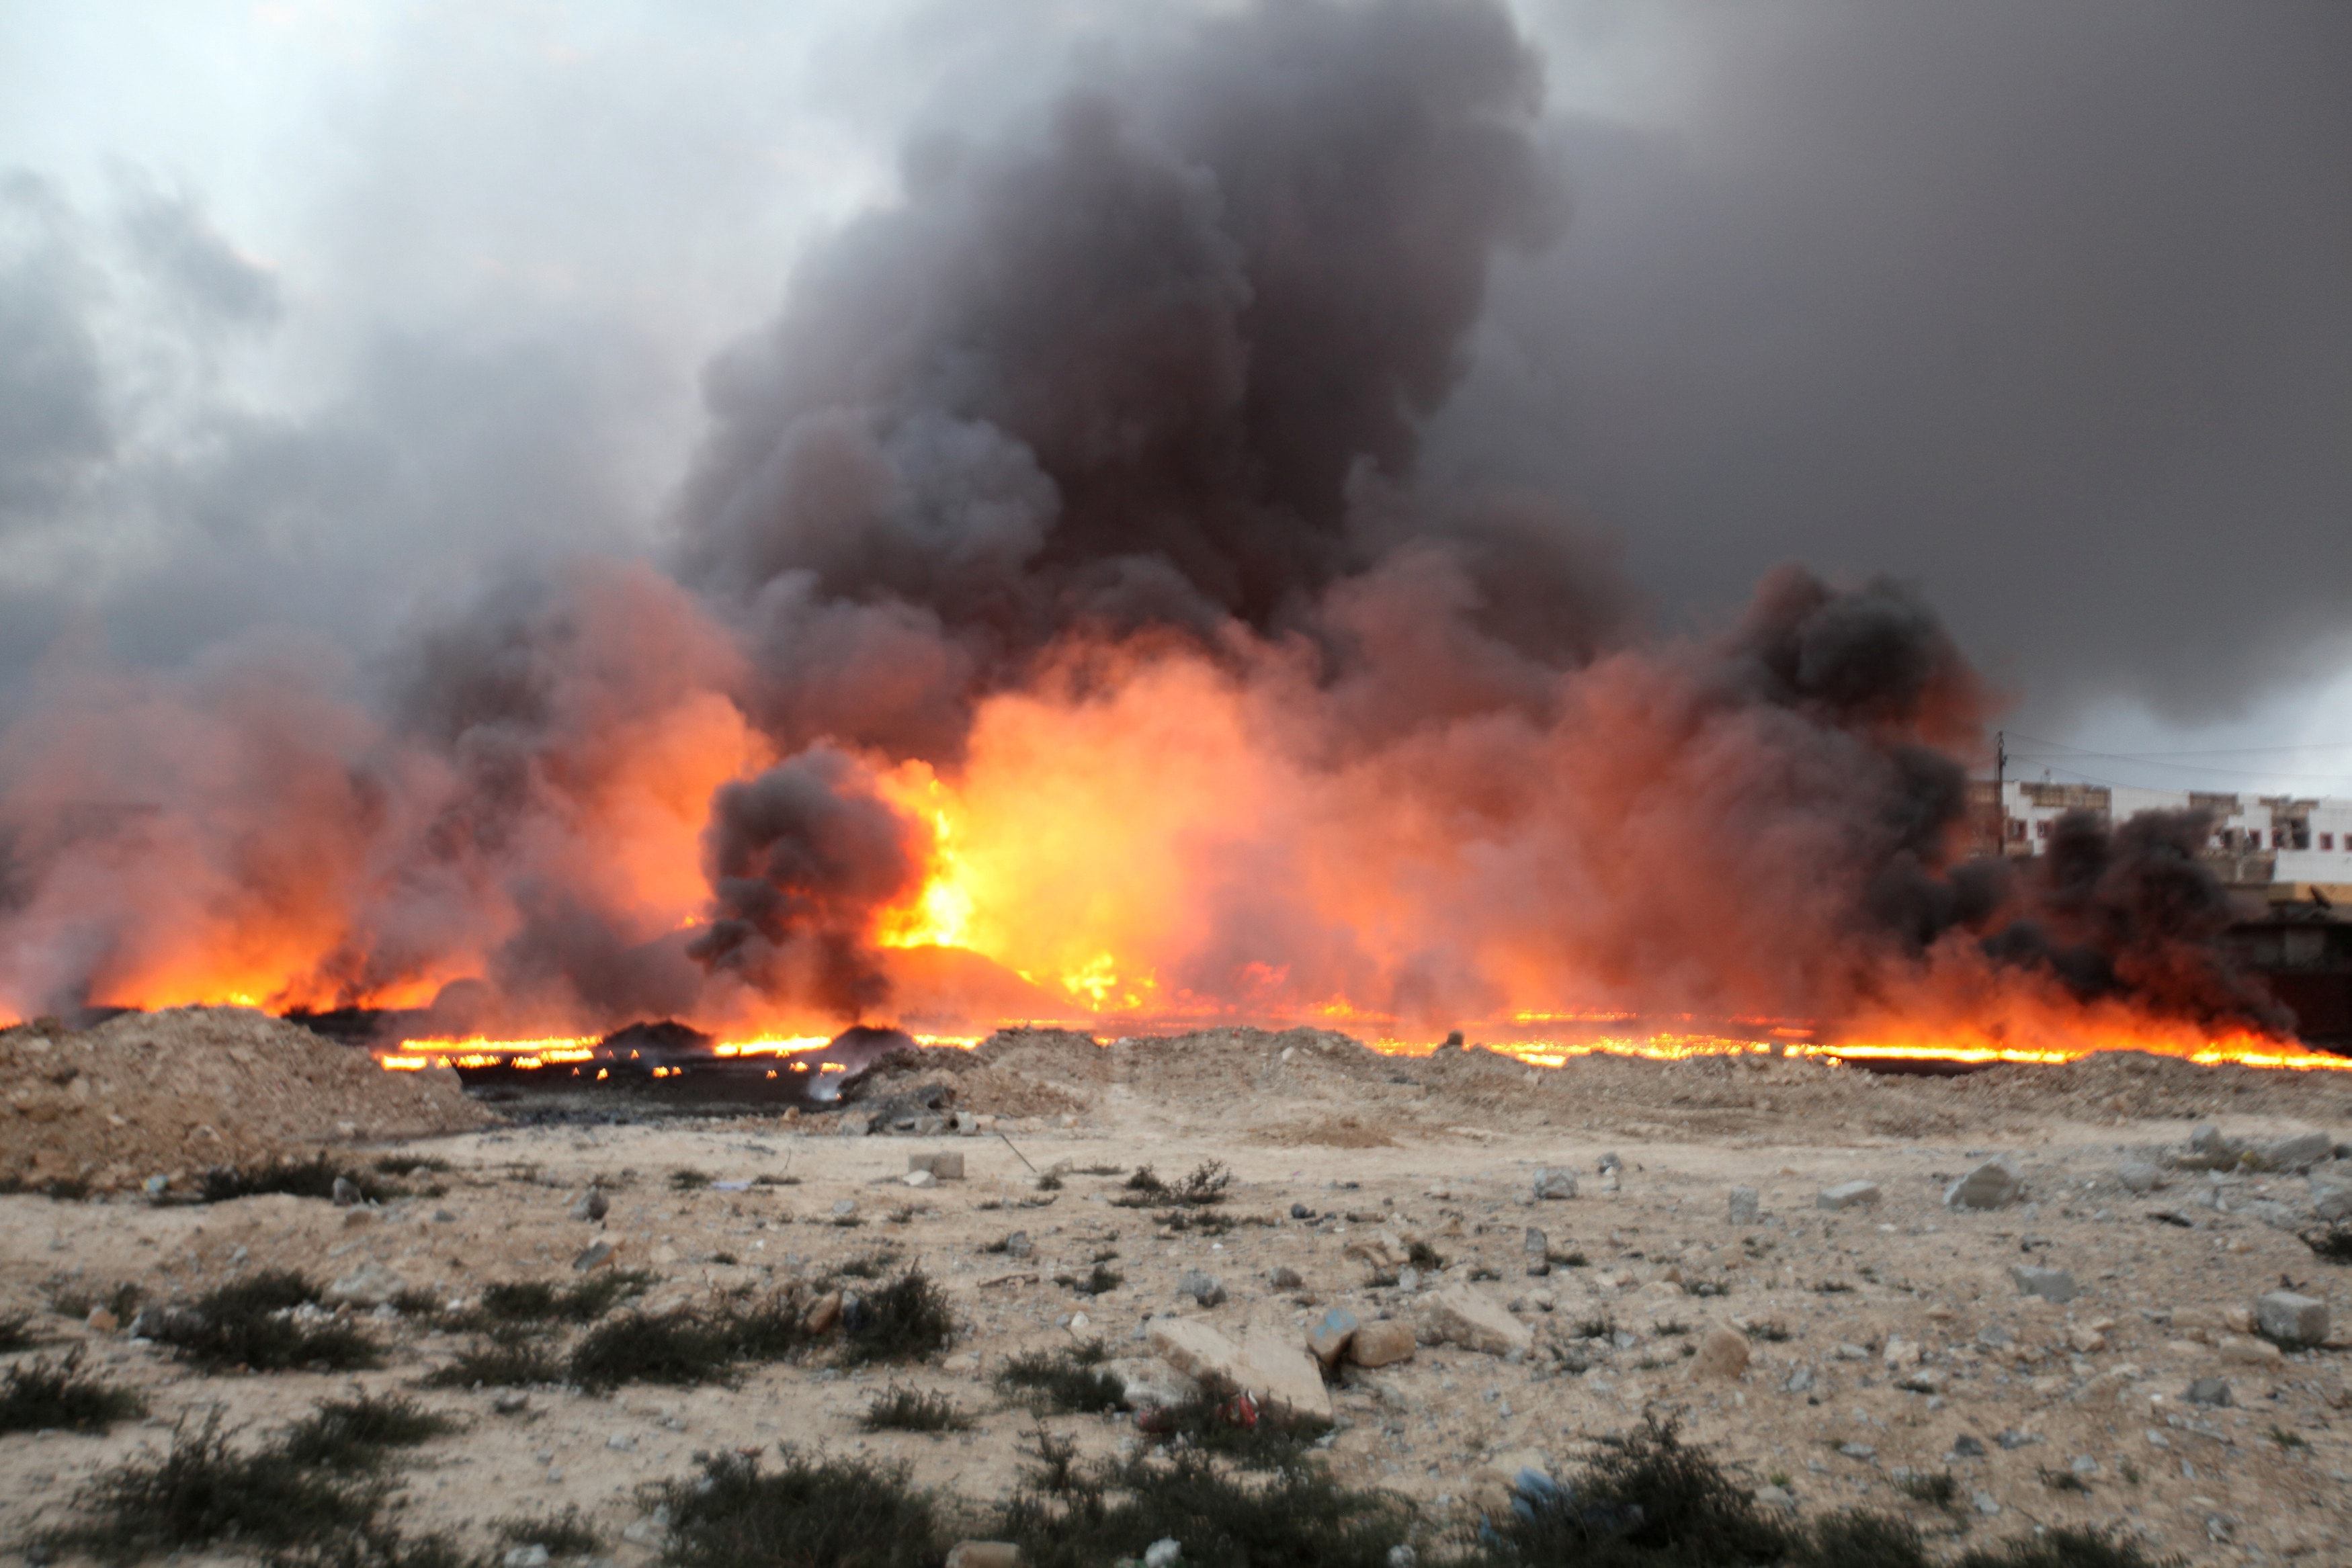 Fire rises from oil wells, set ablaze by Islamic State militants before fleeing the oil-producing region of Qayyara